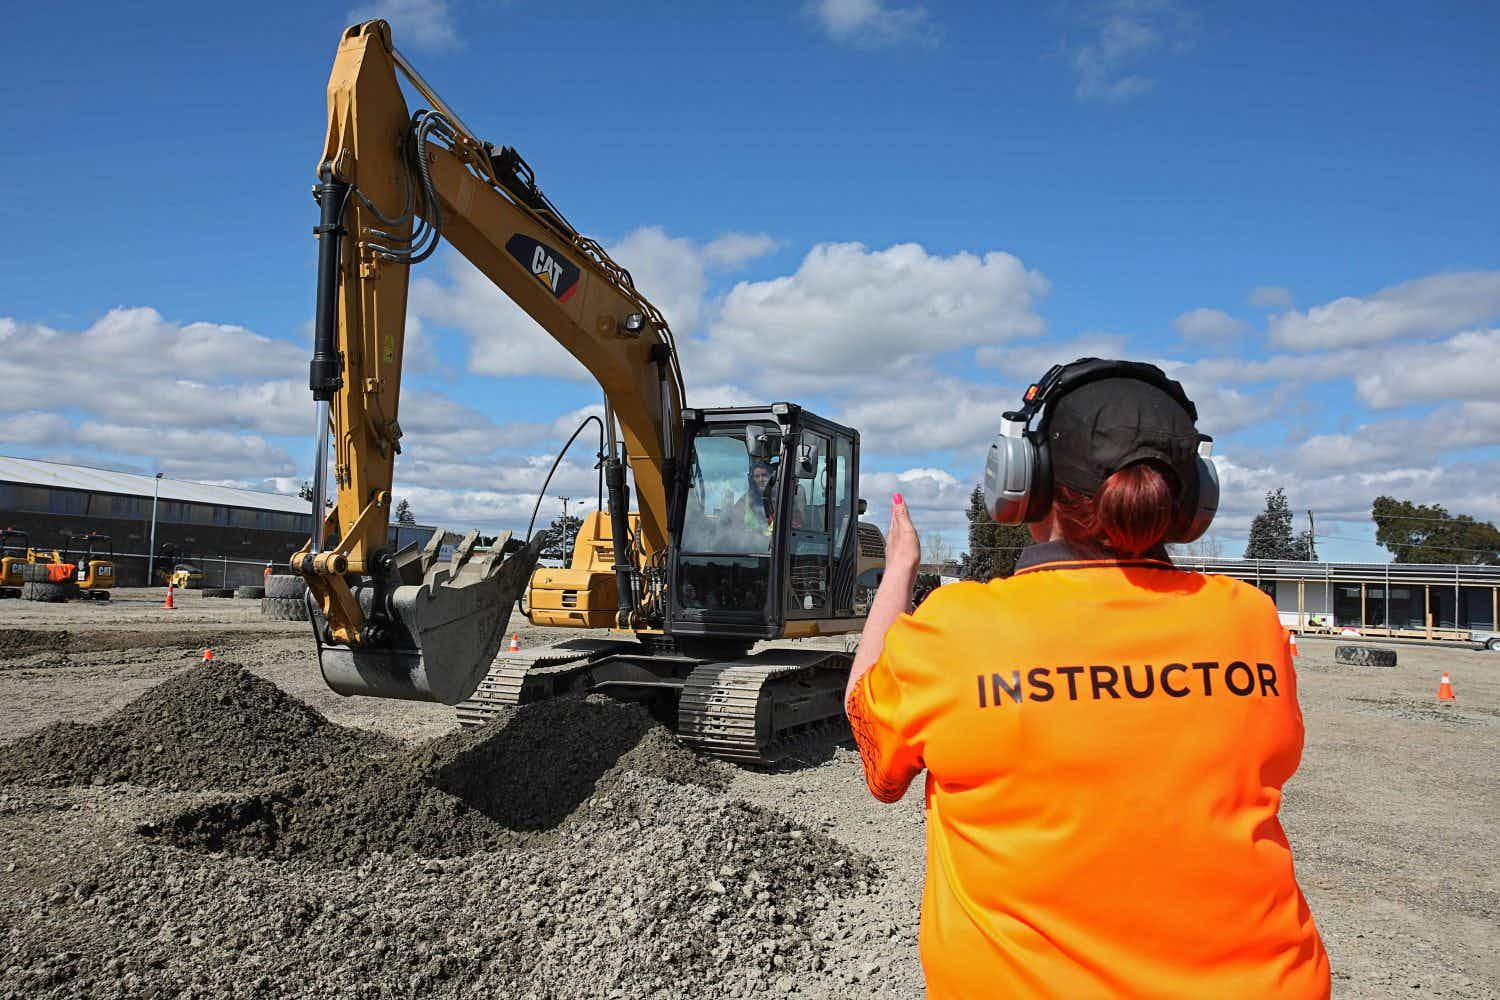 Play with giant diggers and bulldozers at this New Zealand attraction